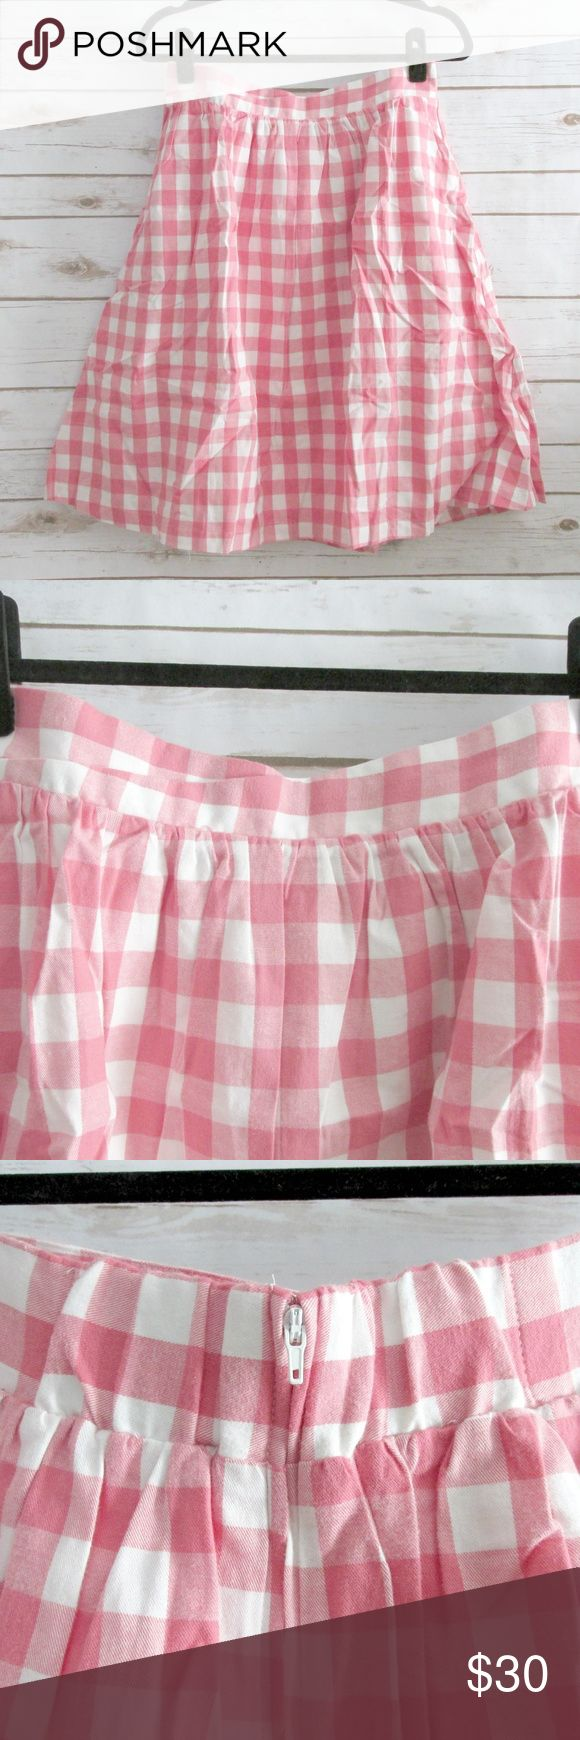 "ModCloth Pink Ivory Cotton Gingham Skirt ModCloth pink and ivory gingham skirt.  The skirt has a sweetheart look folded waist with stretch in the back.  Zip closure and fully lined. Tags are on packaging, not attached to skirt.  Condition: NWT Type: Skirt Brand: ModCloth Size: L Color: Ivory & Pink Measurements: 30"" Waist, 23.5"" Length Materials: 100% Cotton Manufacturer: China  DD0.12:201902031659:13:982M ModCloth Skirts Midi"